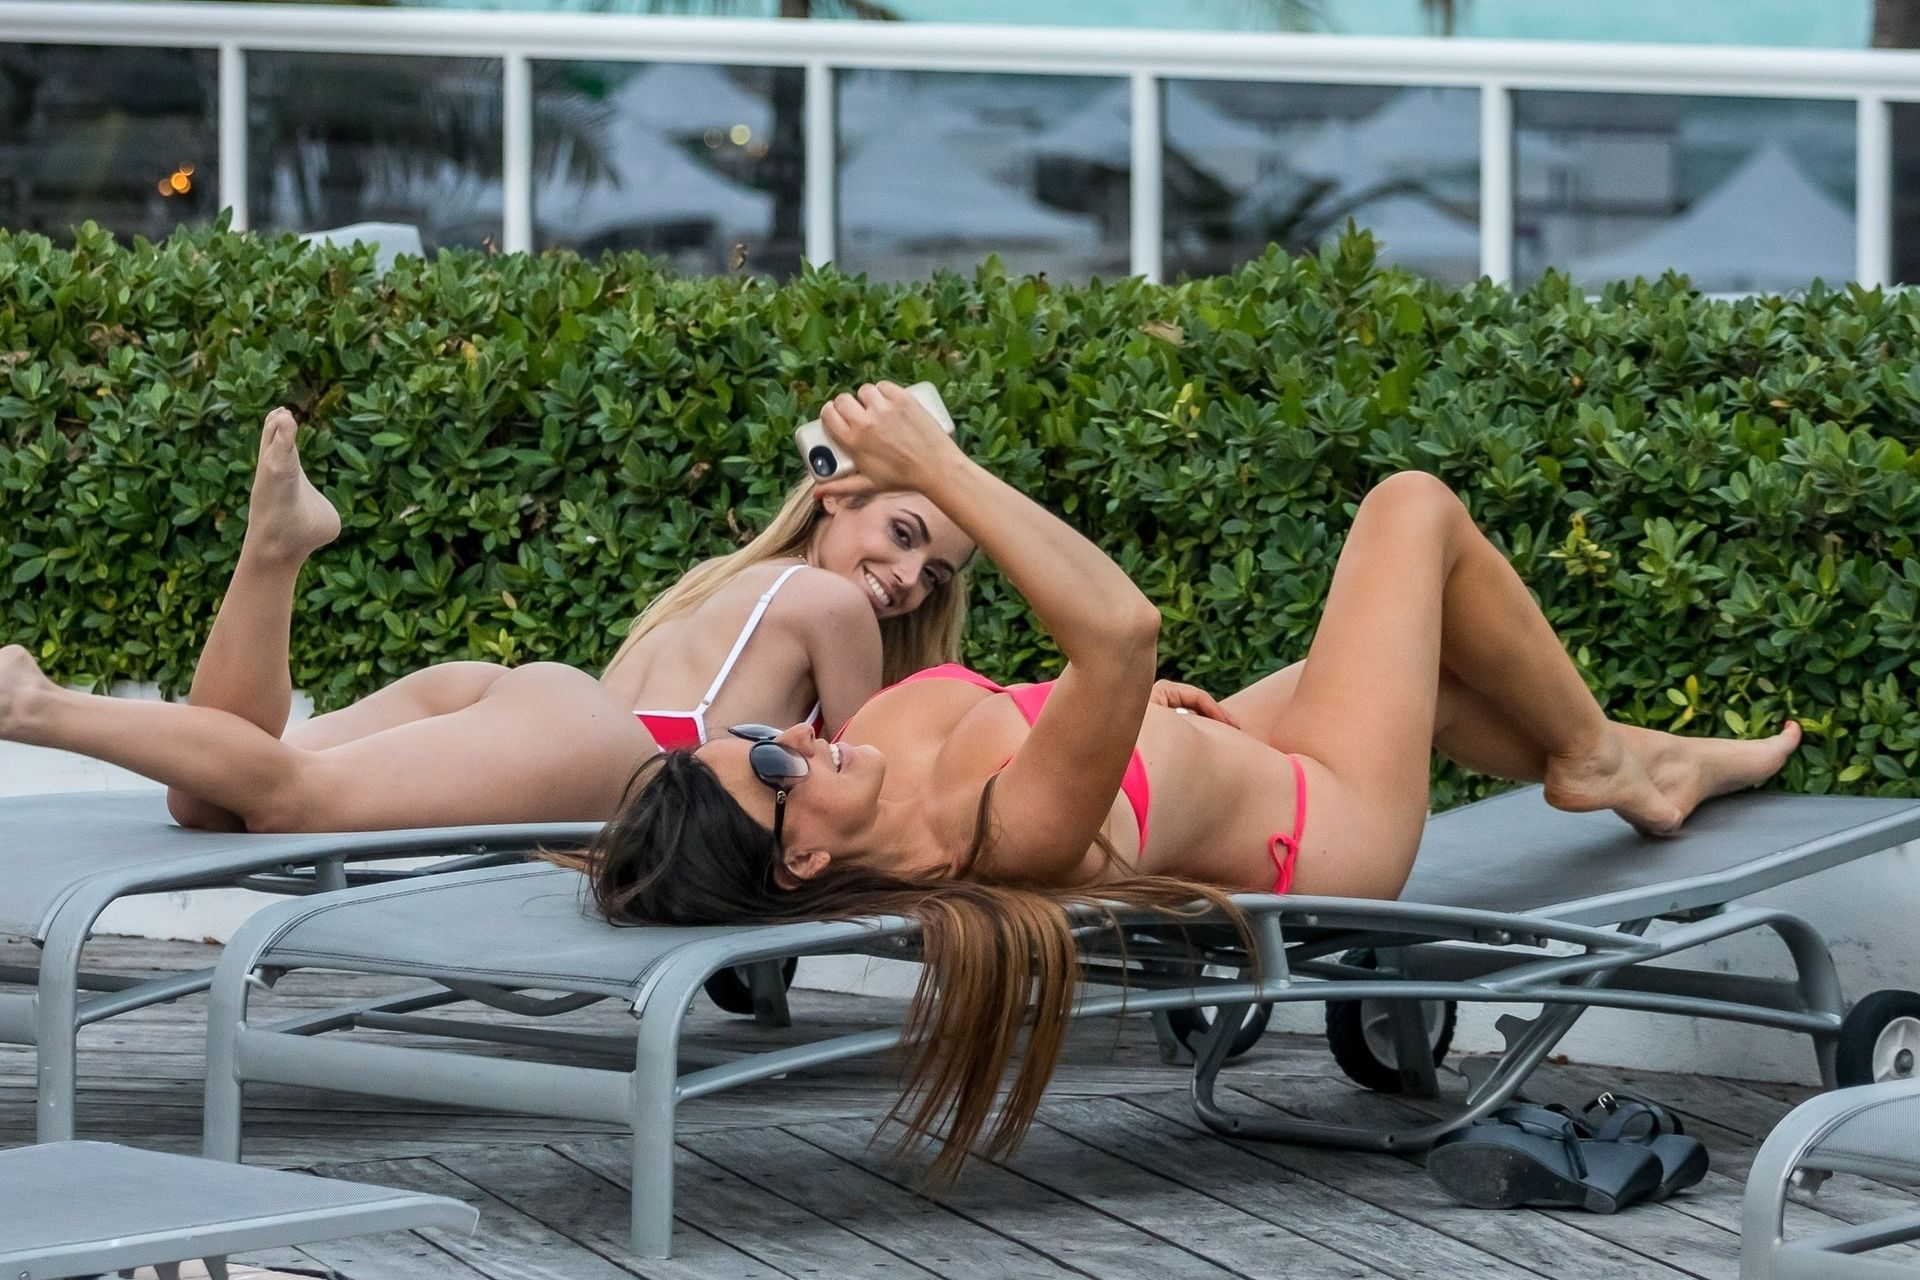 Claudia Romani And Her Friend Cloe Greco Chill By The Pool 0014